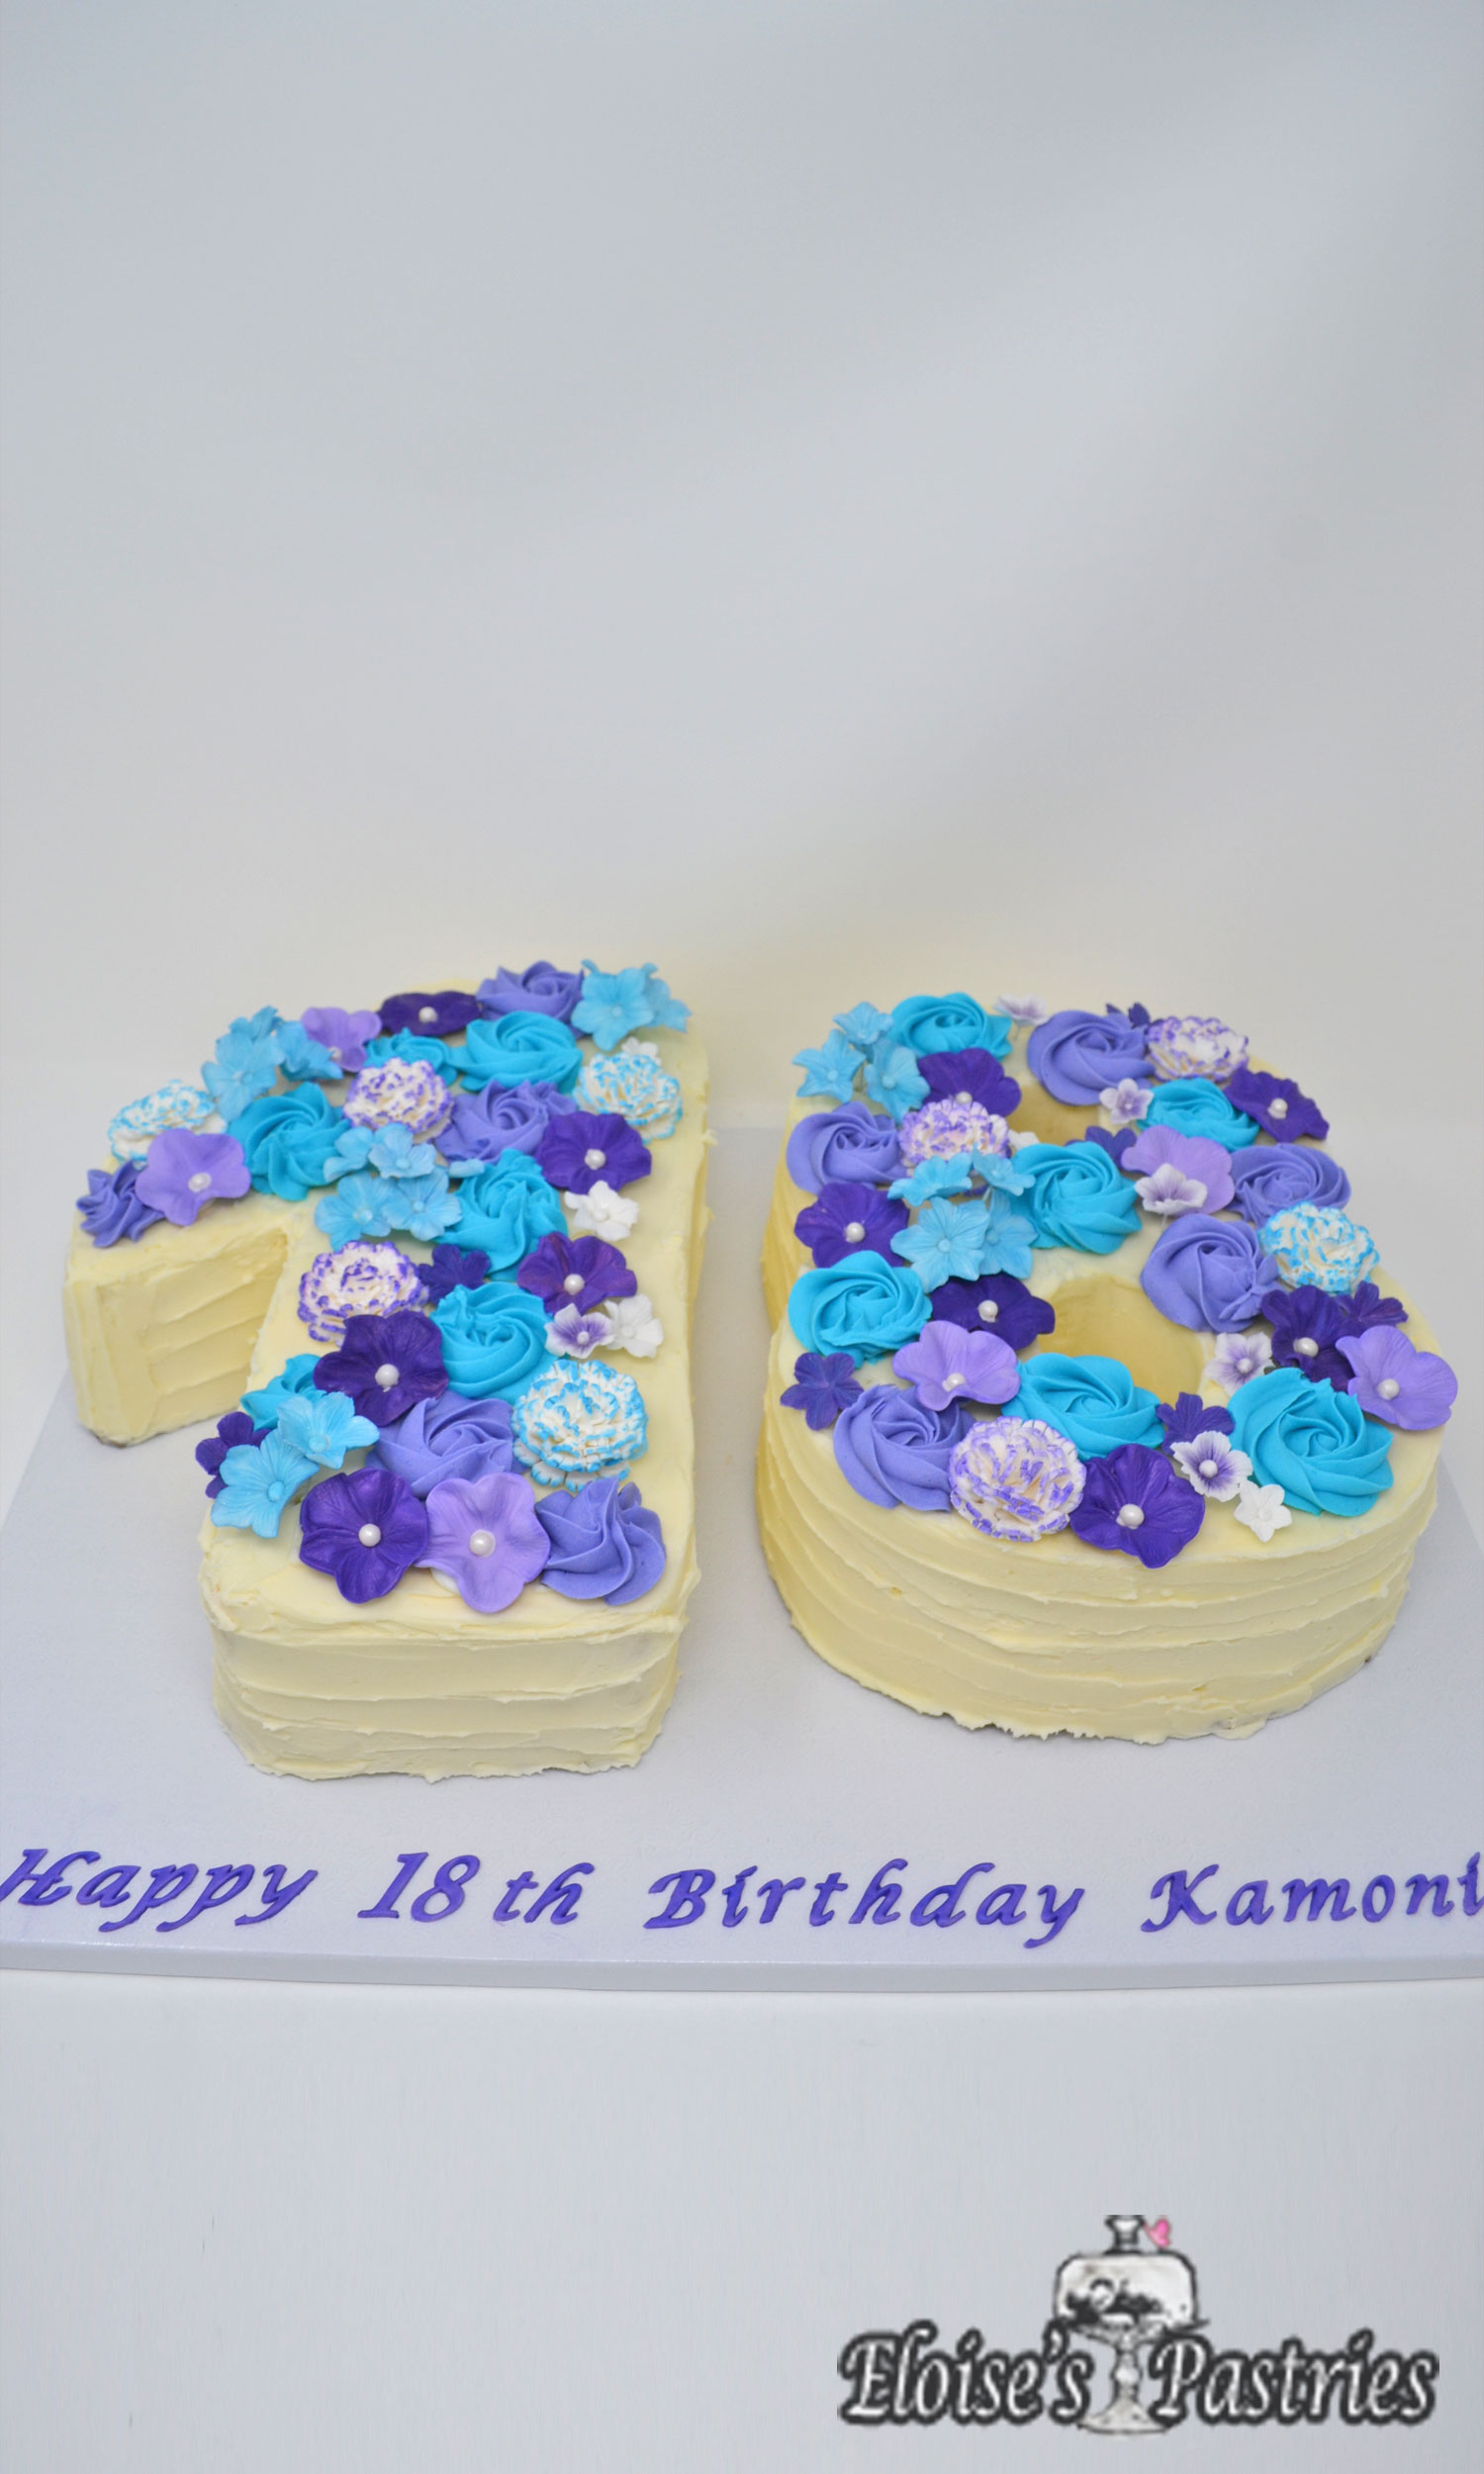 18th Birthday Cakes for Her